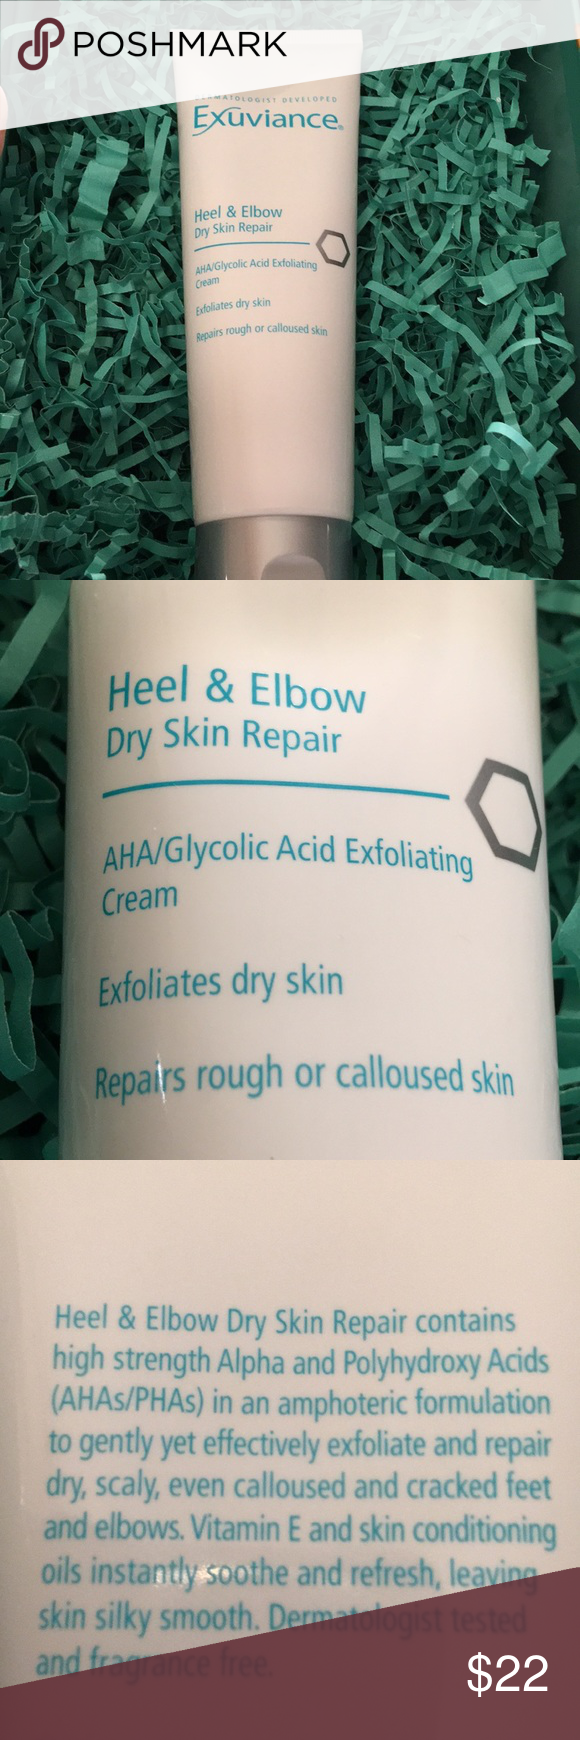 Exuviance Heel & Elbow Dry Skin Repair Has been tried, still full.   Exuviance Heel and Elbow Dry Skin Repair gently yet effectively exfoliates and repairs dry, scaly, calloused and cracked skin with high strength Alpha and Poly Hydroxy Acids (AHAs/PHAs) in an amphoteric formulation. Vitamin E and skin conditioning oils instantly soothe and refresh. Feet are pedicure-perfect and sandal-ready while elbows are skin that's smooth as silk and ready for short sleeves. Dermatologist tested and fragrance free. Exuviance Other #crackedskinonheels